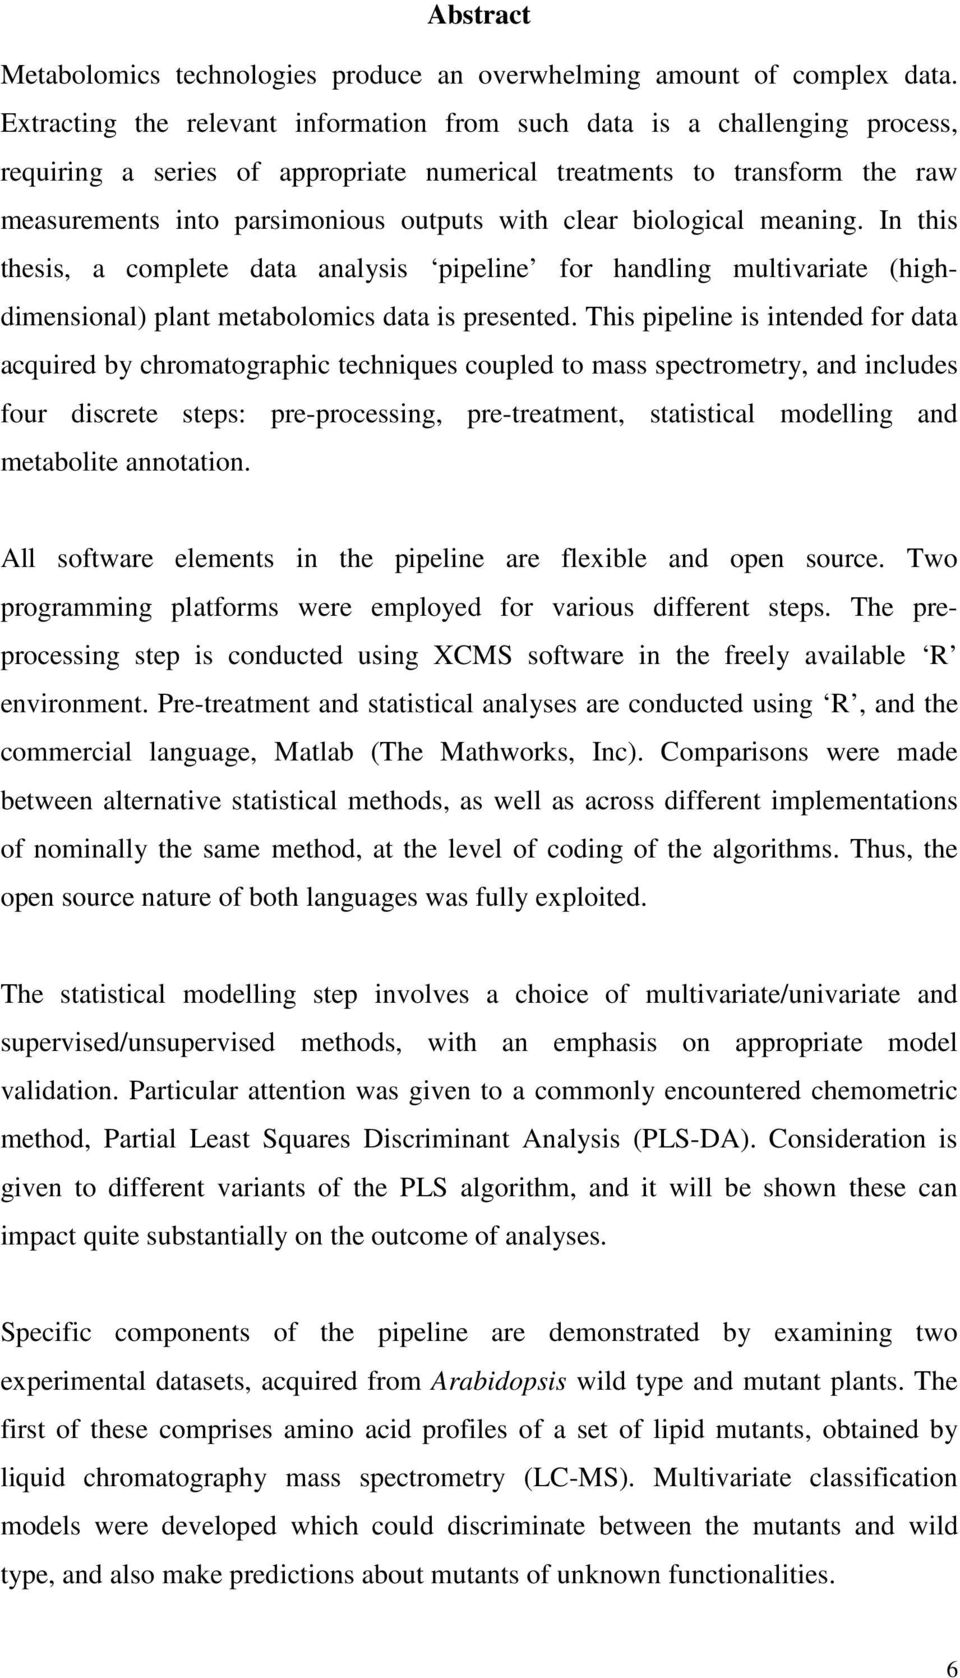 clear biological meaning. In this thesis, a complete data analysis pipeline for handling multivariate (highdimensional) plant metabolomics data is presented.